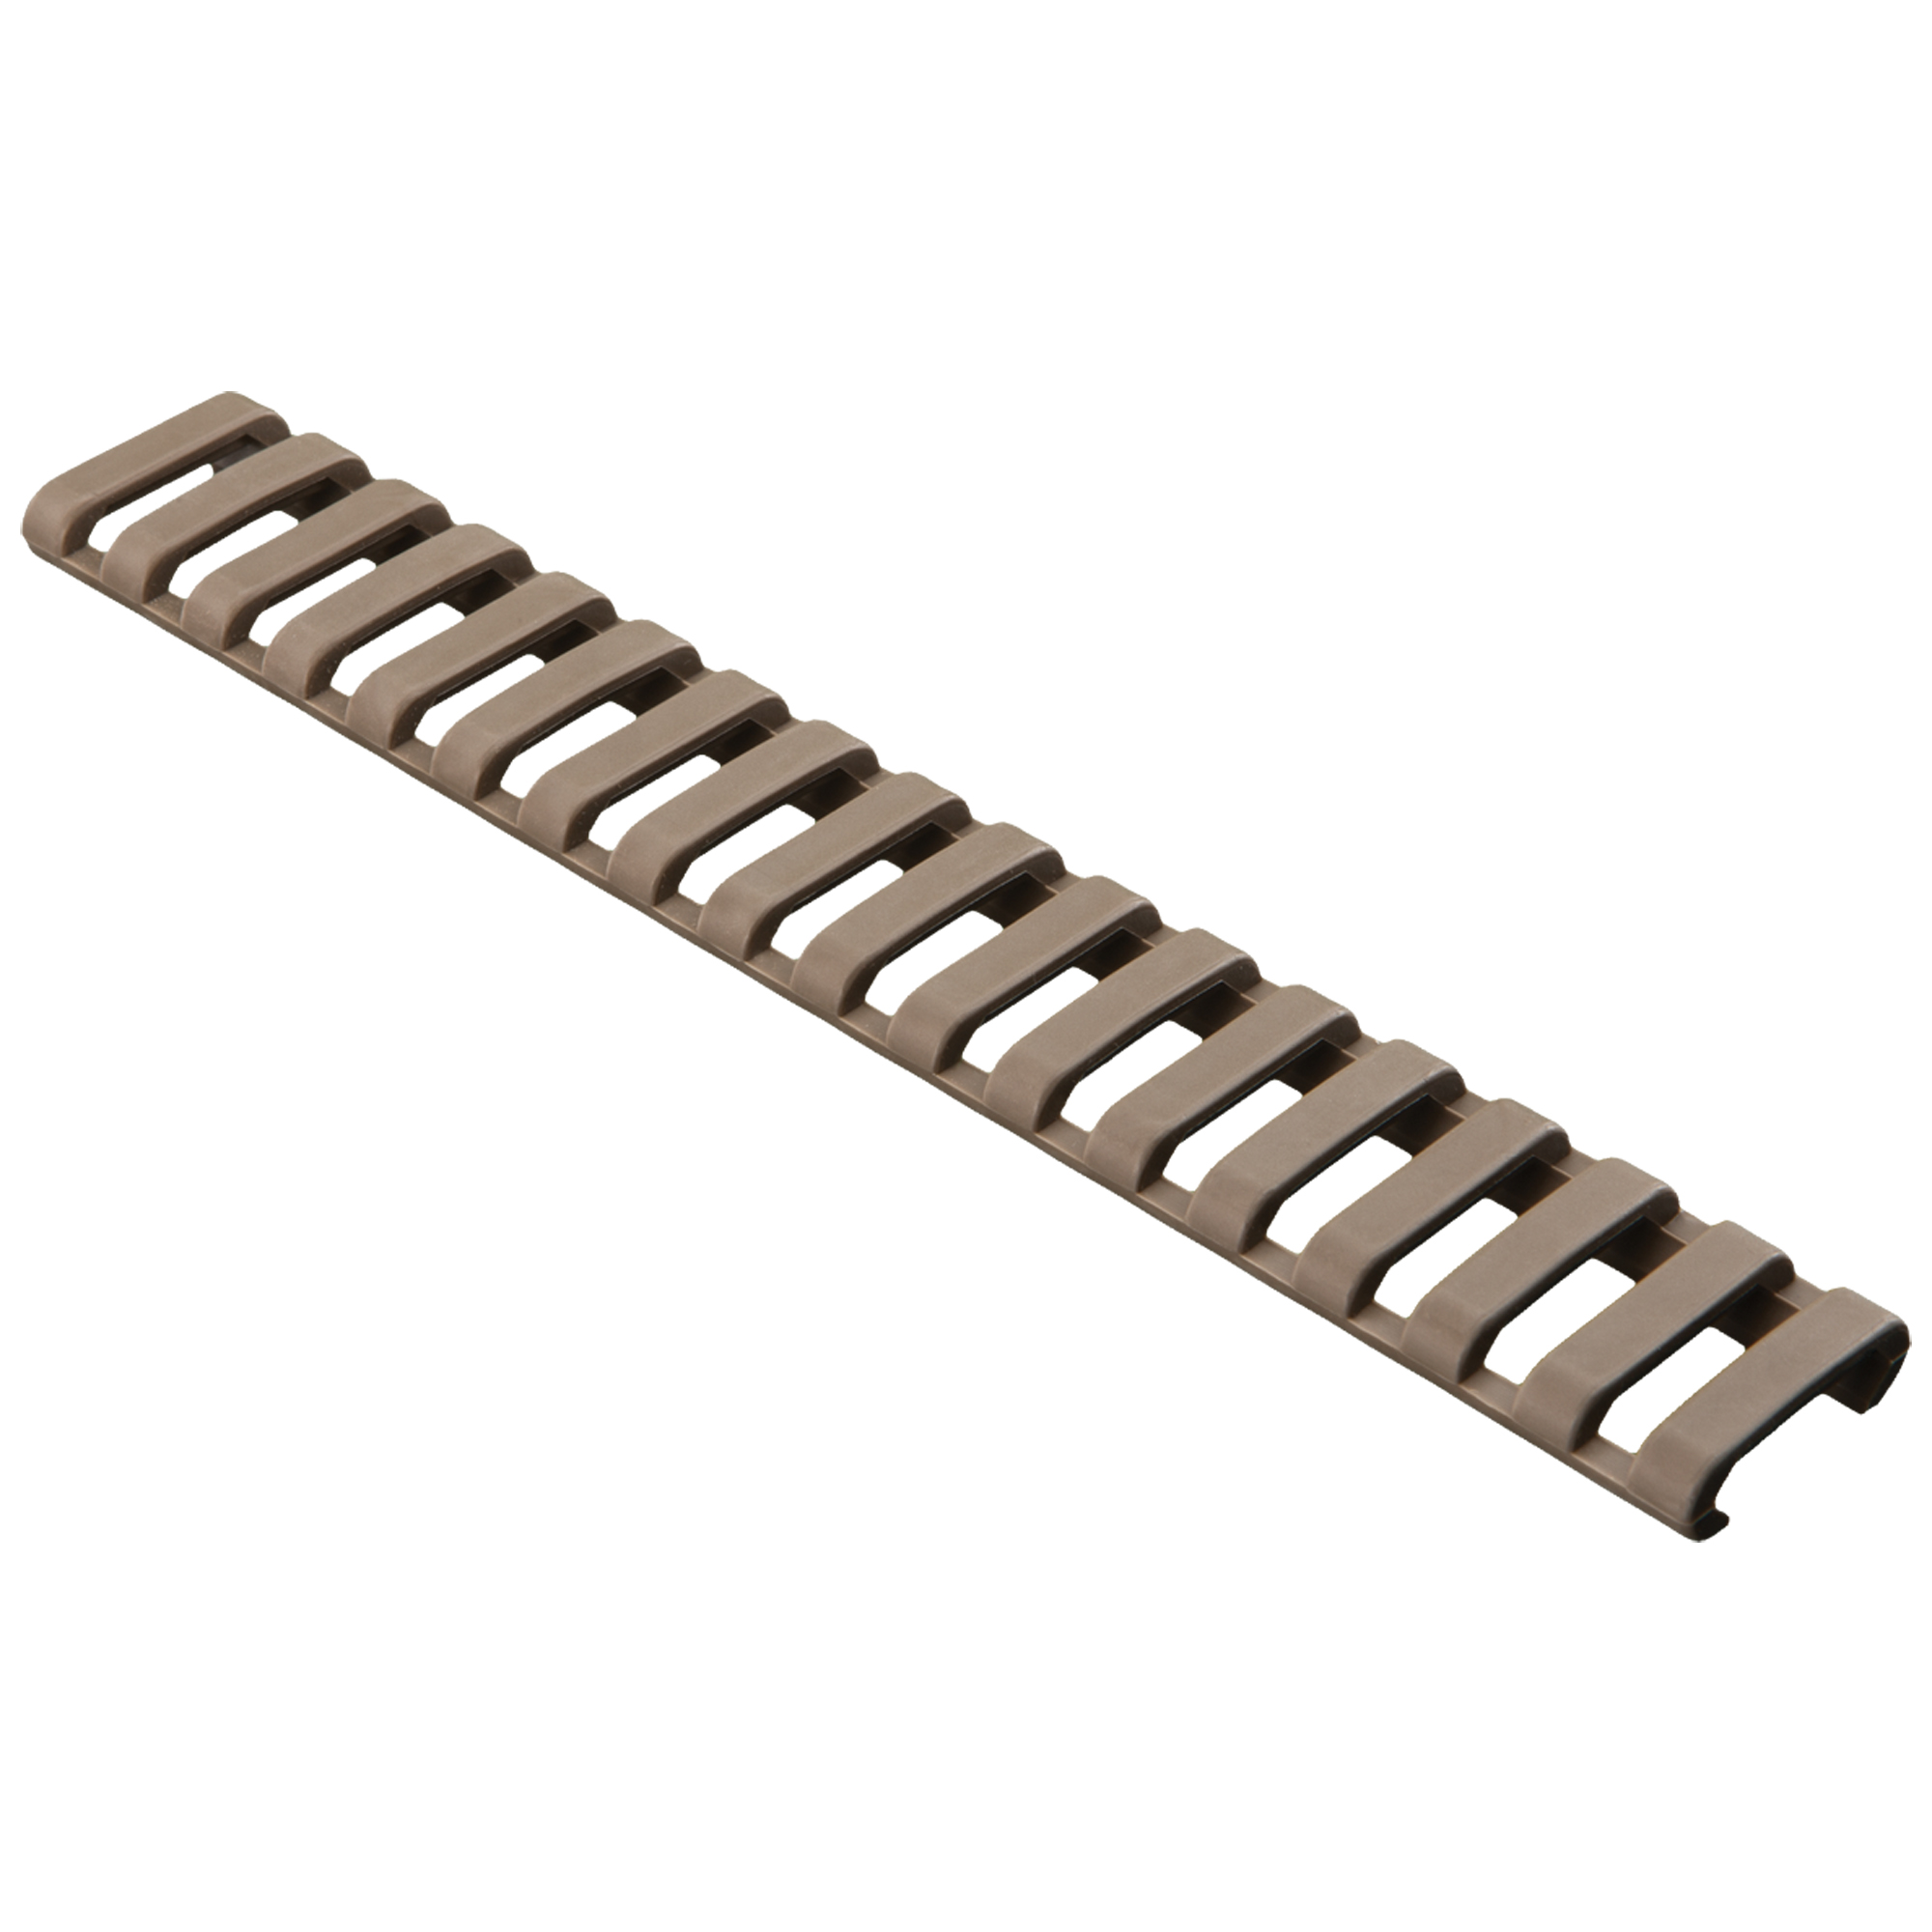 """Ladder Panels offer very low-profile 1913 Picatinny rail coverage. The Santoprene material provide a rubbery surface for improved weapon control and rail protection. Easily cut for custom lengths"""" each panel fits one side of a carbine-length rail (18 slots). One panel per package. Manufactured by Falcon Industries"""" Inc."""